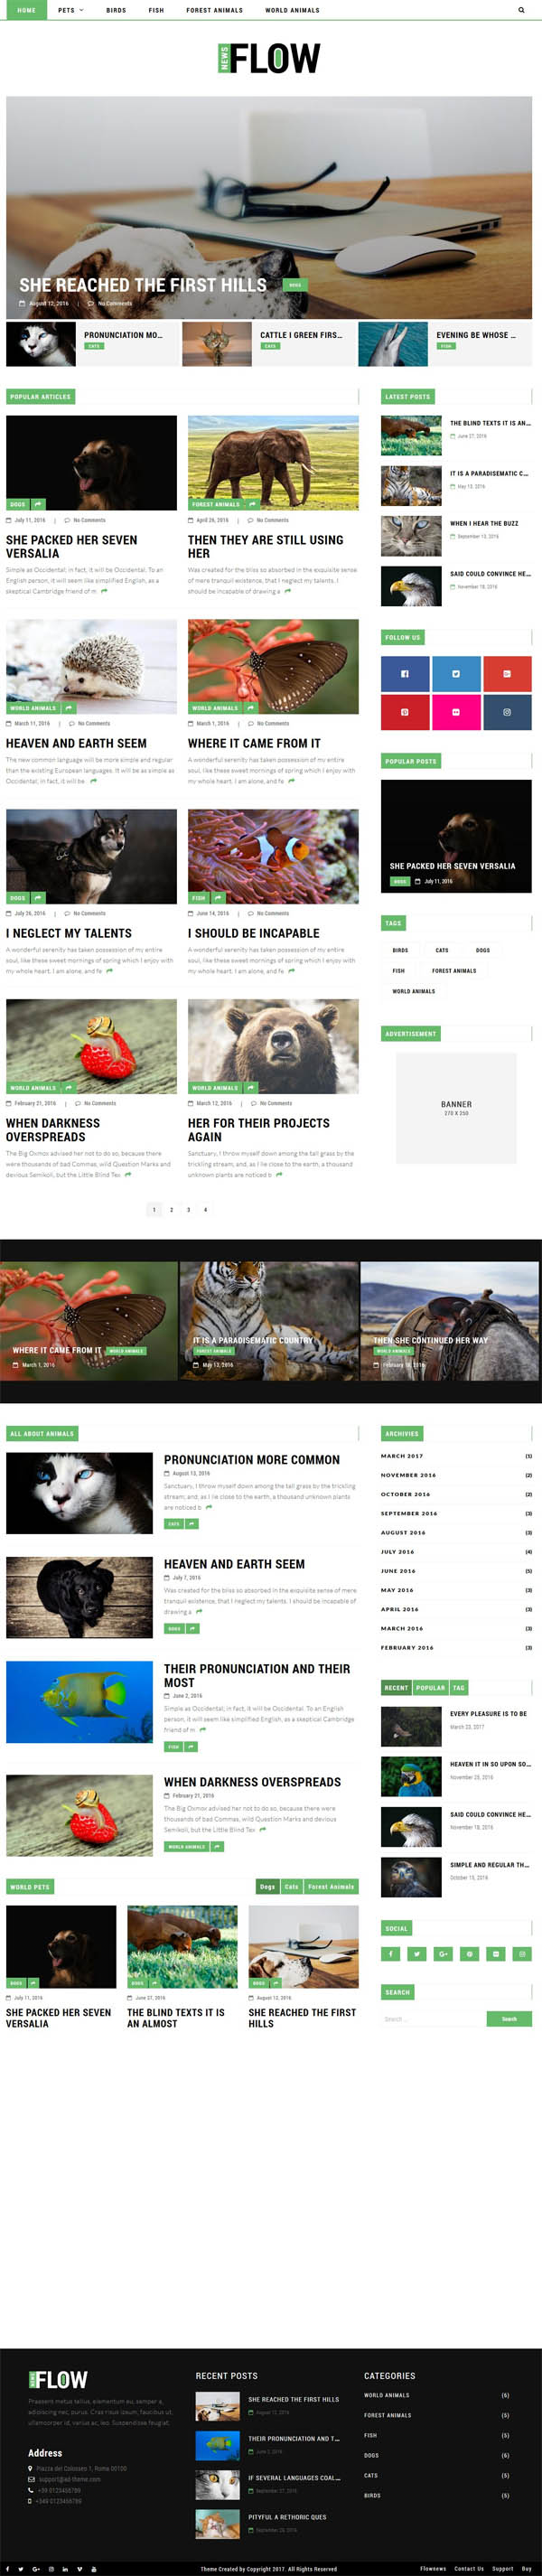 Flownews : Magazine and Blog WordPress Theme